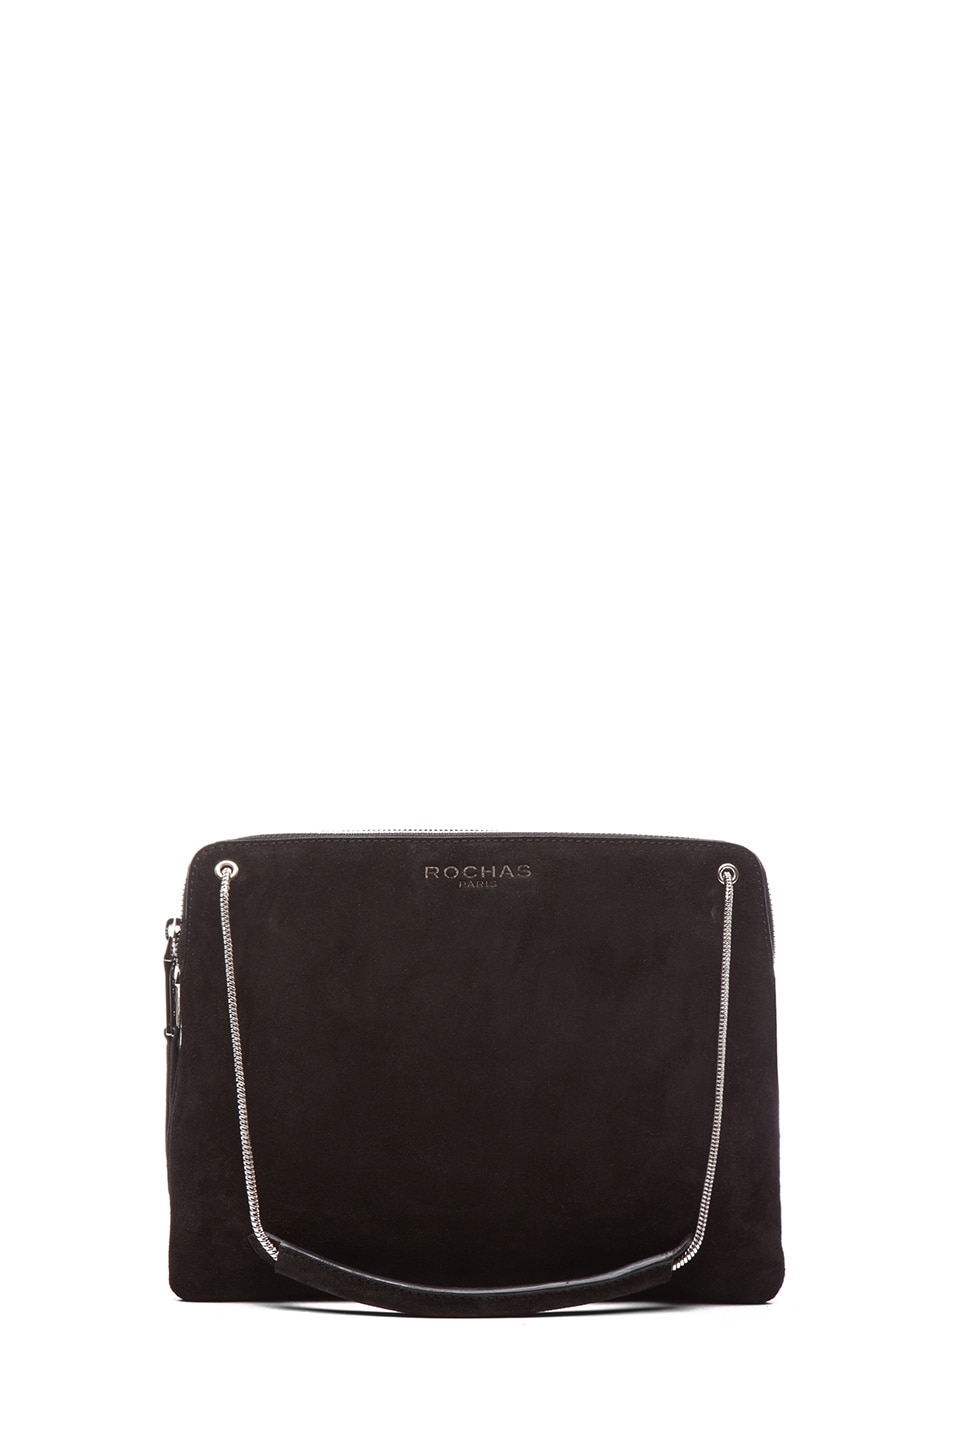 Image 1 of ROCHAS Small Borsa Suede Clutch in Black